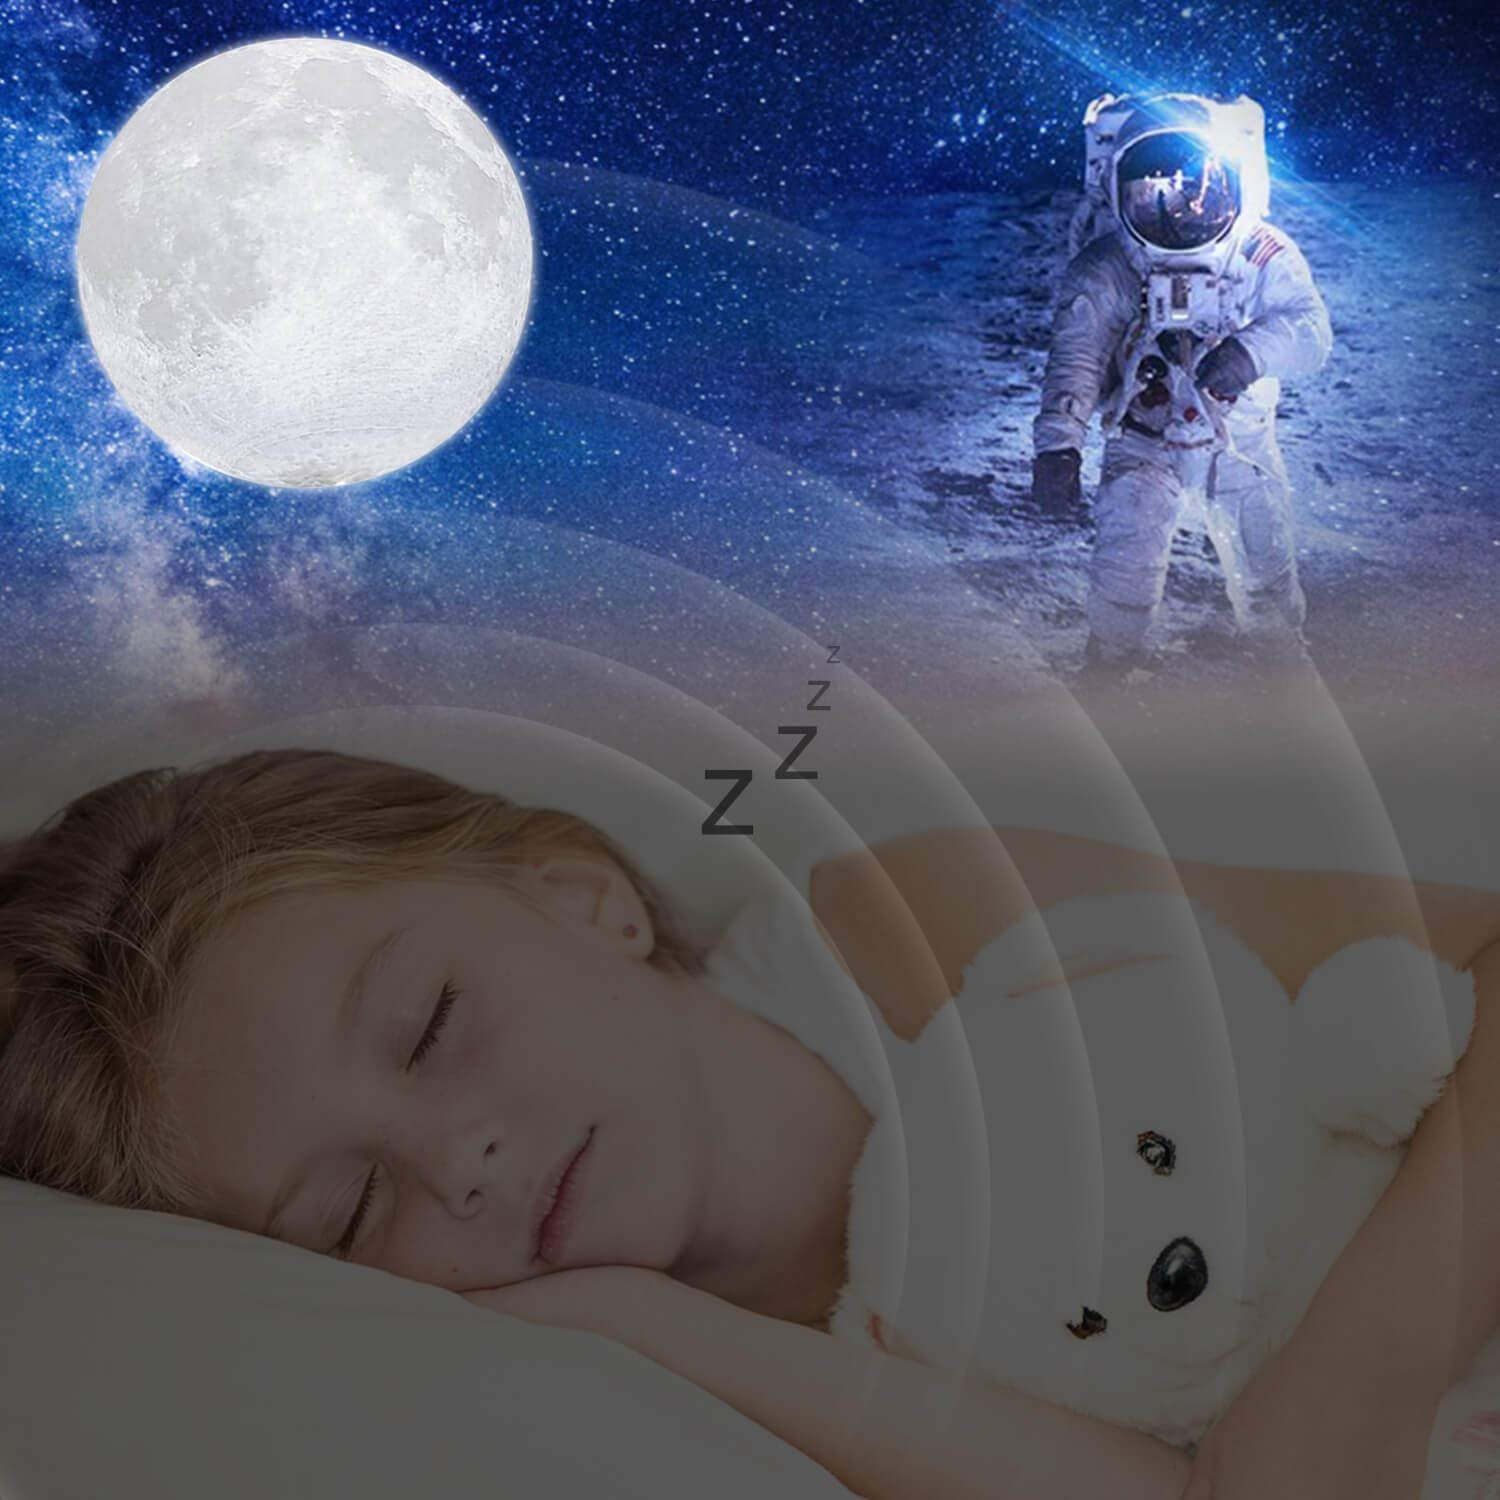 Moon Lamp, 16 Colors 3D Printed Moon Night Light (Large, 5.9in) with Stand, USB Charging, Touch & Remote Control - Cool Nursery Decor for Baby, Top Birthday Party Gift Christmas Gifts by YICAI (Image #5)